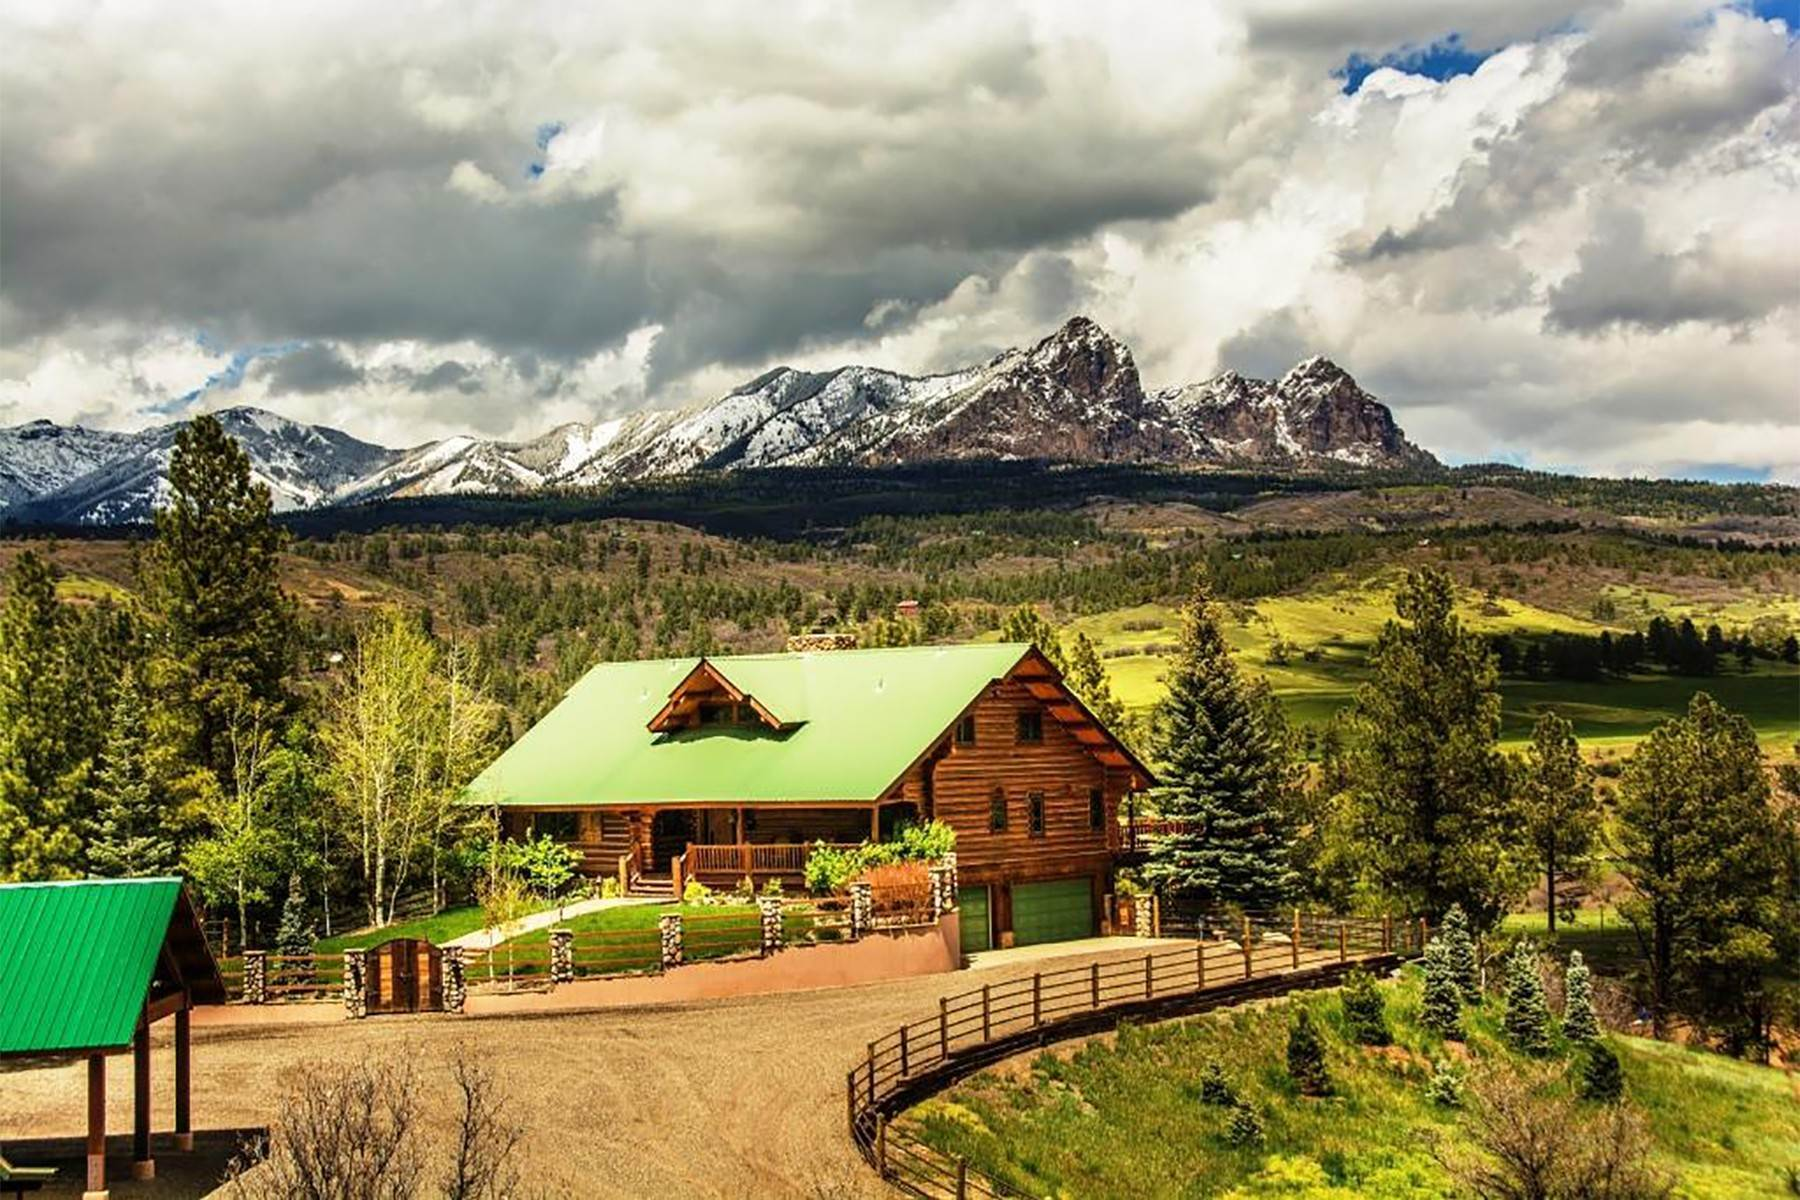 Single Family Homes for Active at Cross Bell Ranch 2851 Cty Rd 382 Pagosa Springs, Colorado 81128 United States